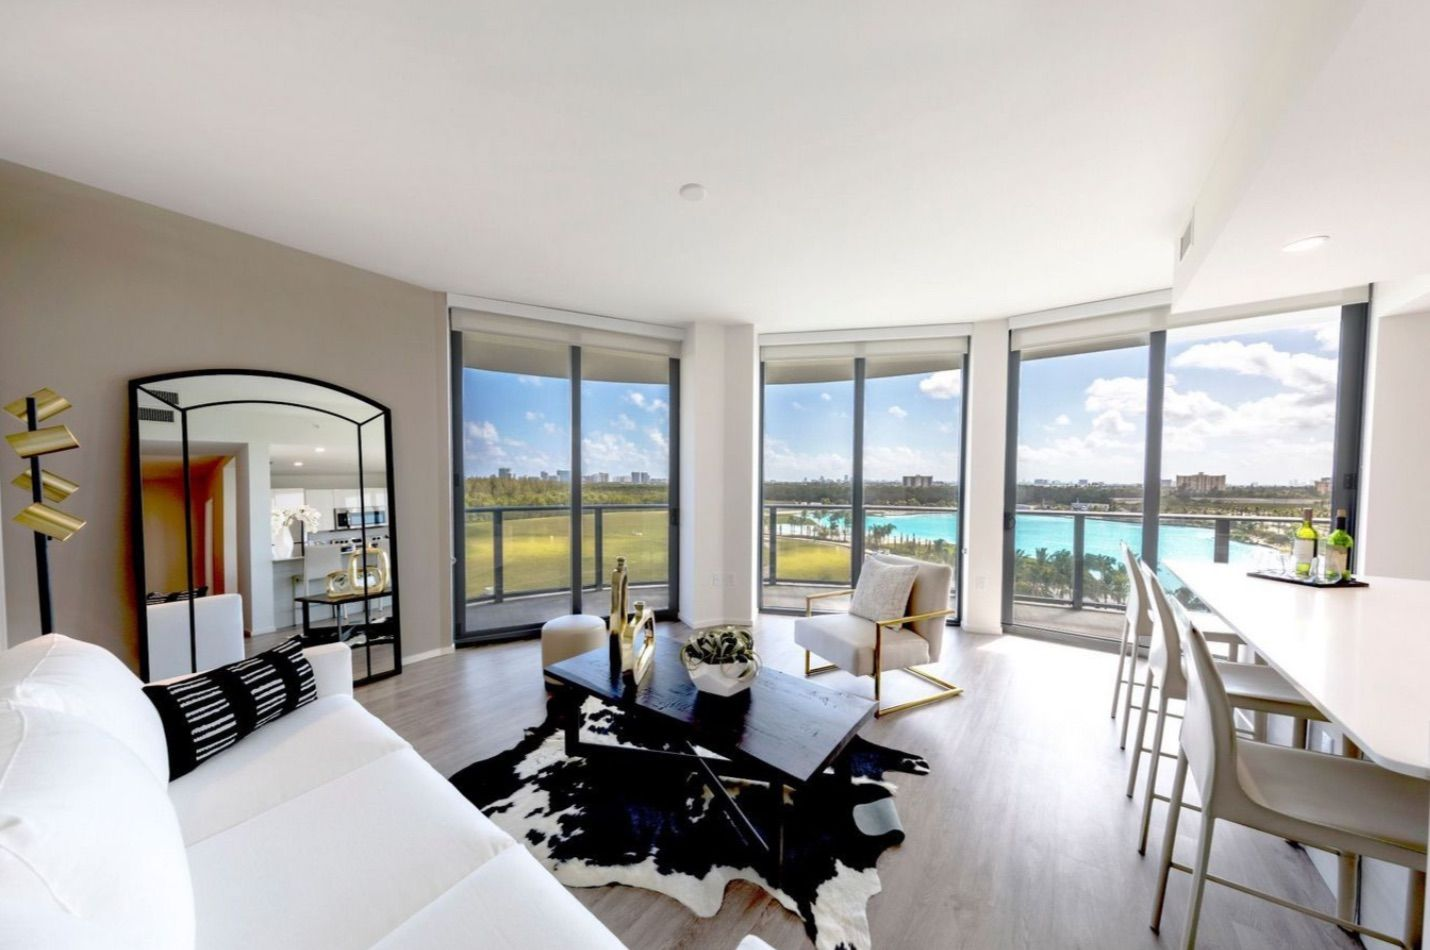 Luxurious Apartment in North Miami, FL with a view of the Laguna Solé Lagoon